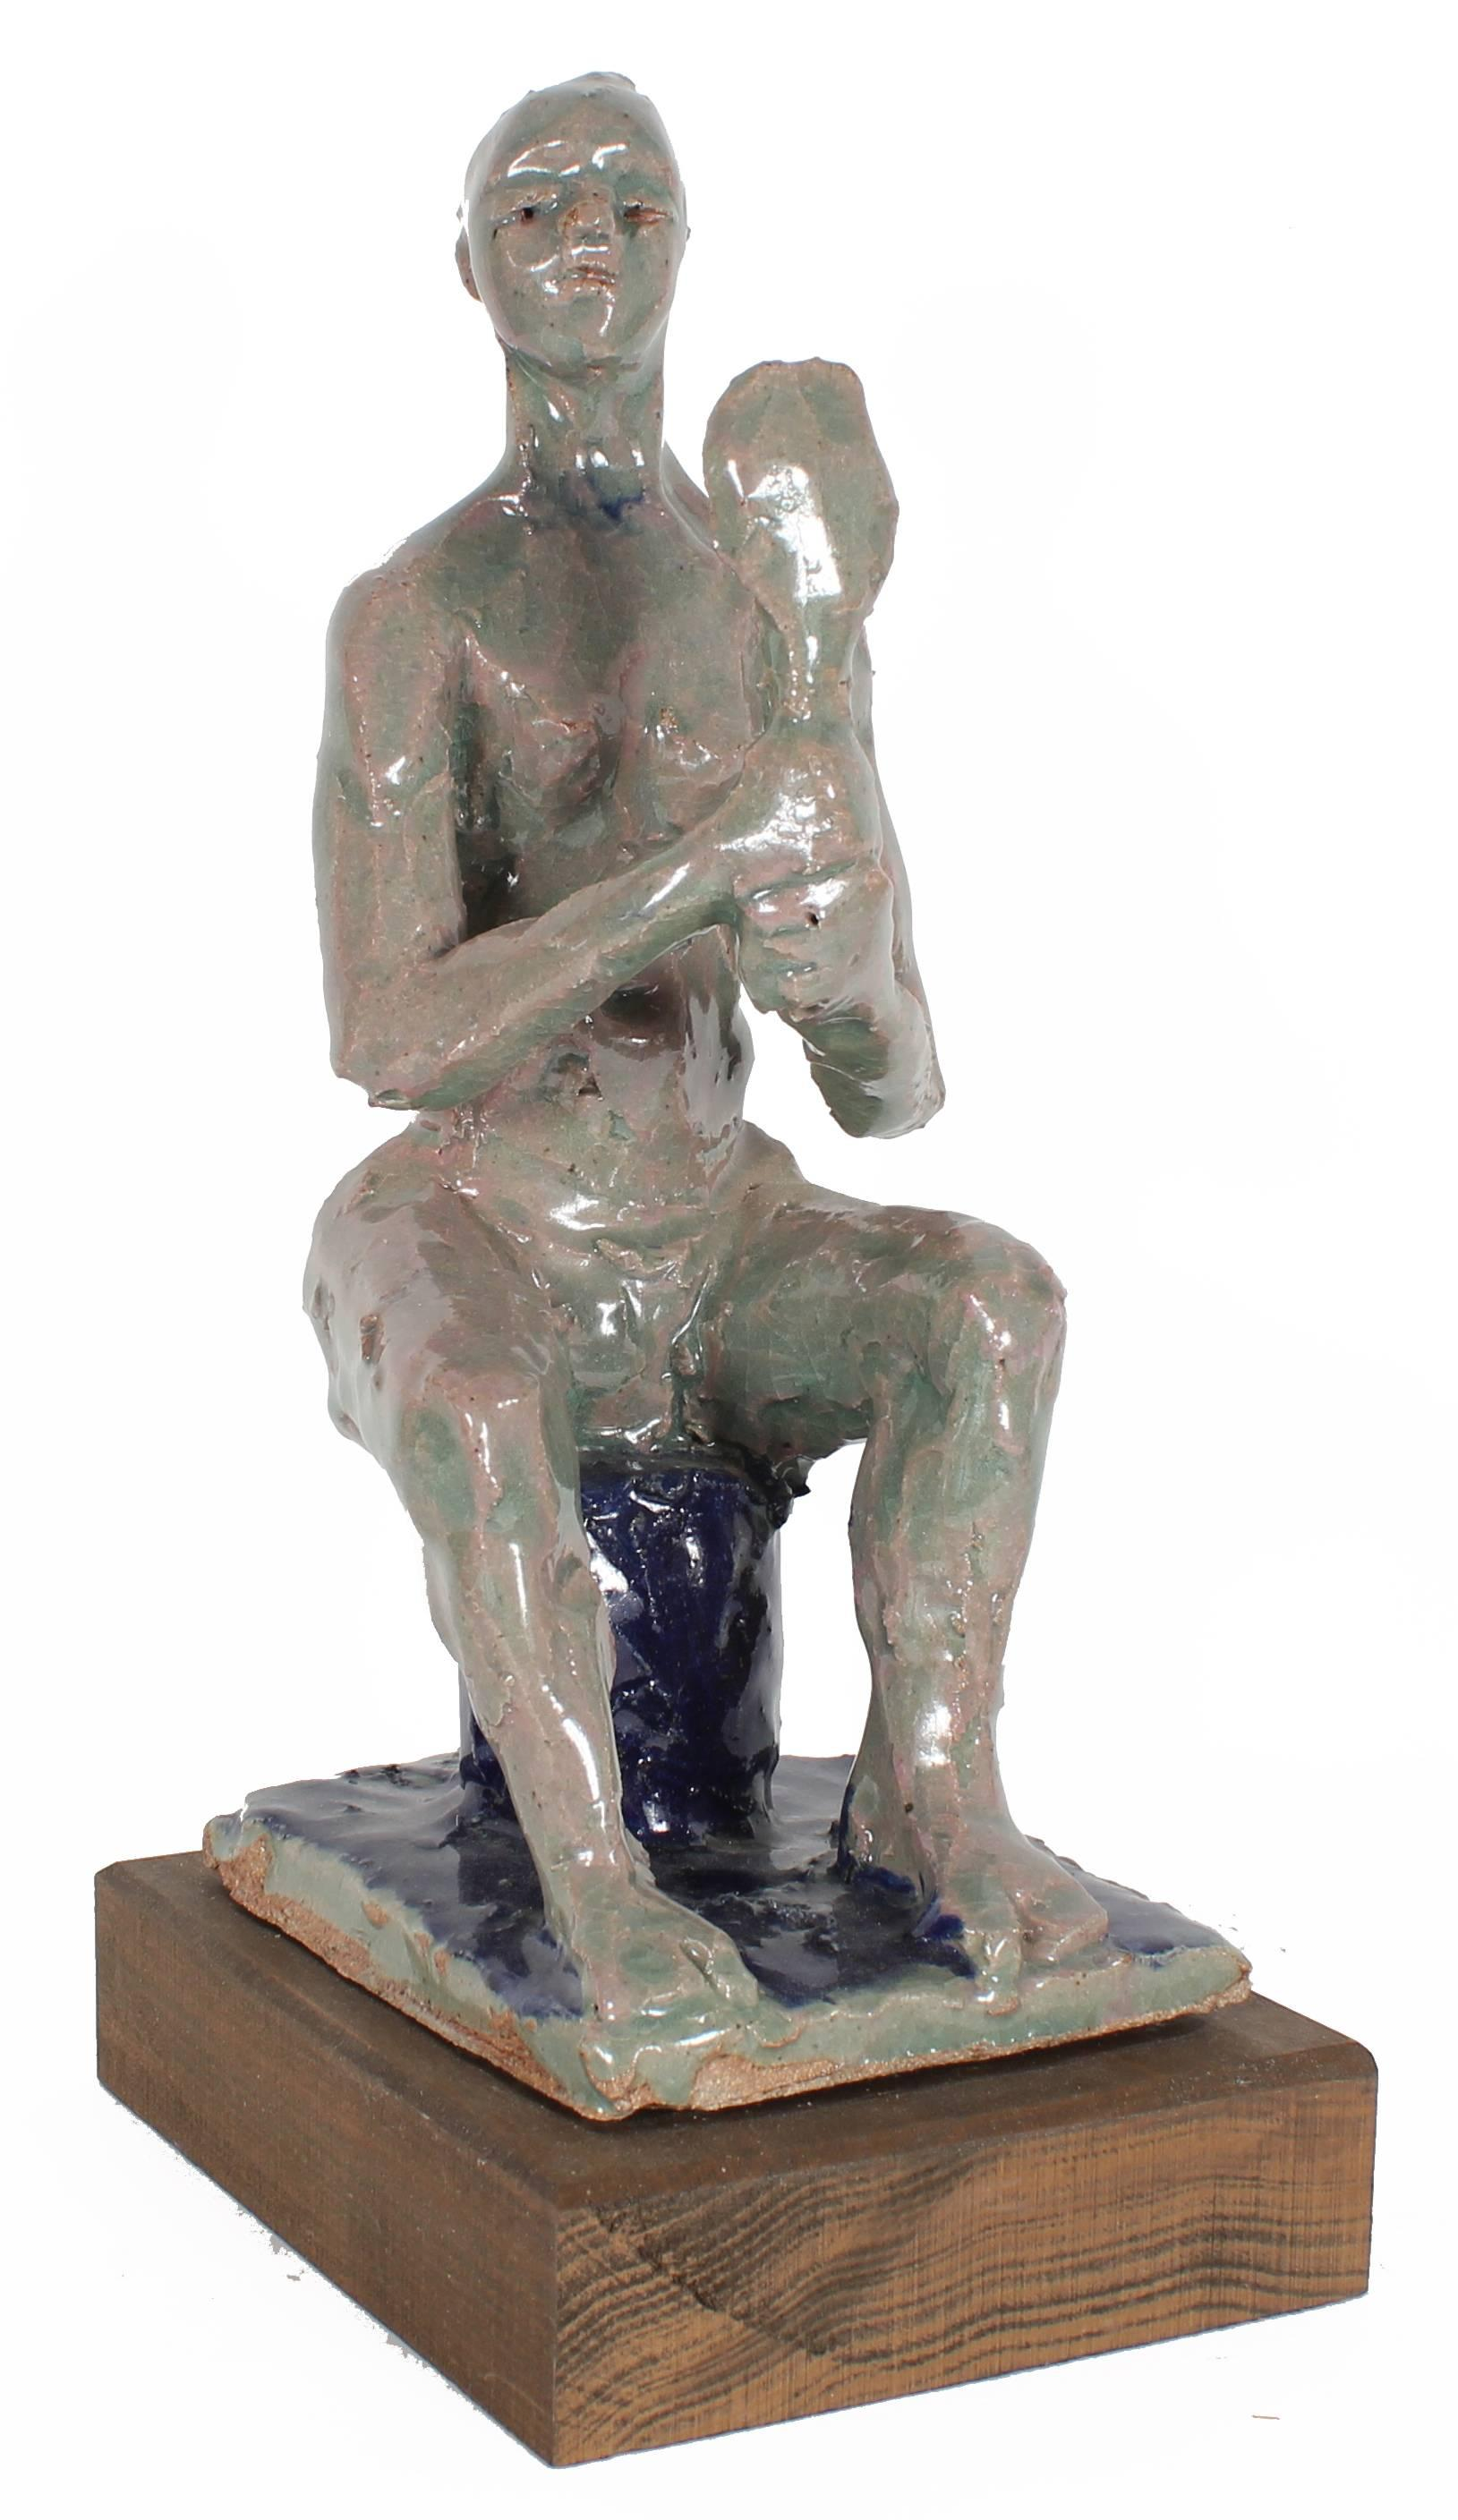 Seated Figure with Mirror, Ceramic Sculpture in Gray with Turquoise and Navy